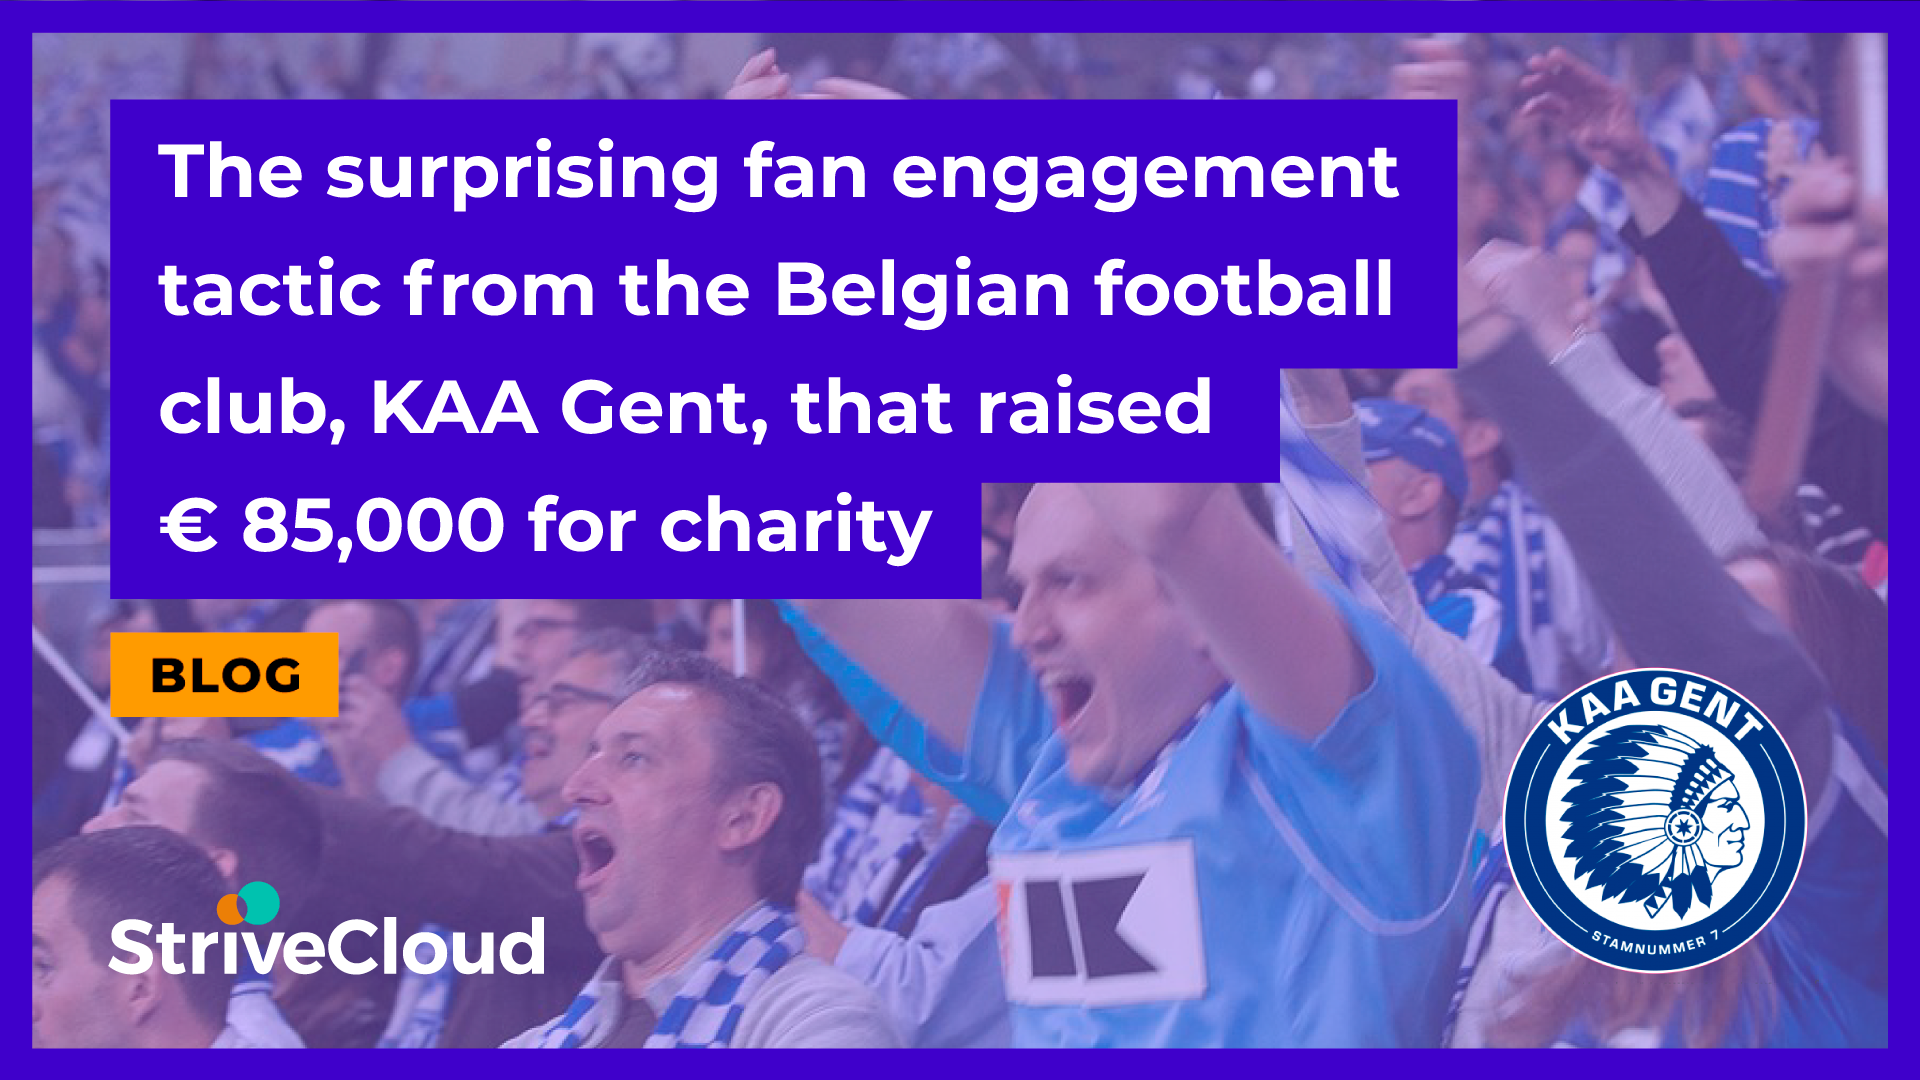 The surprising fan engagement tactic from the Belgian football club, KAA Gent, that raised € 85,000 for charity